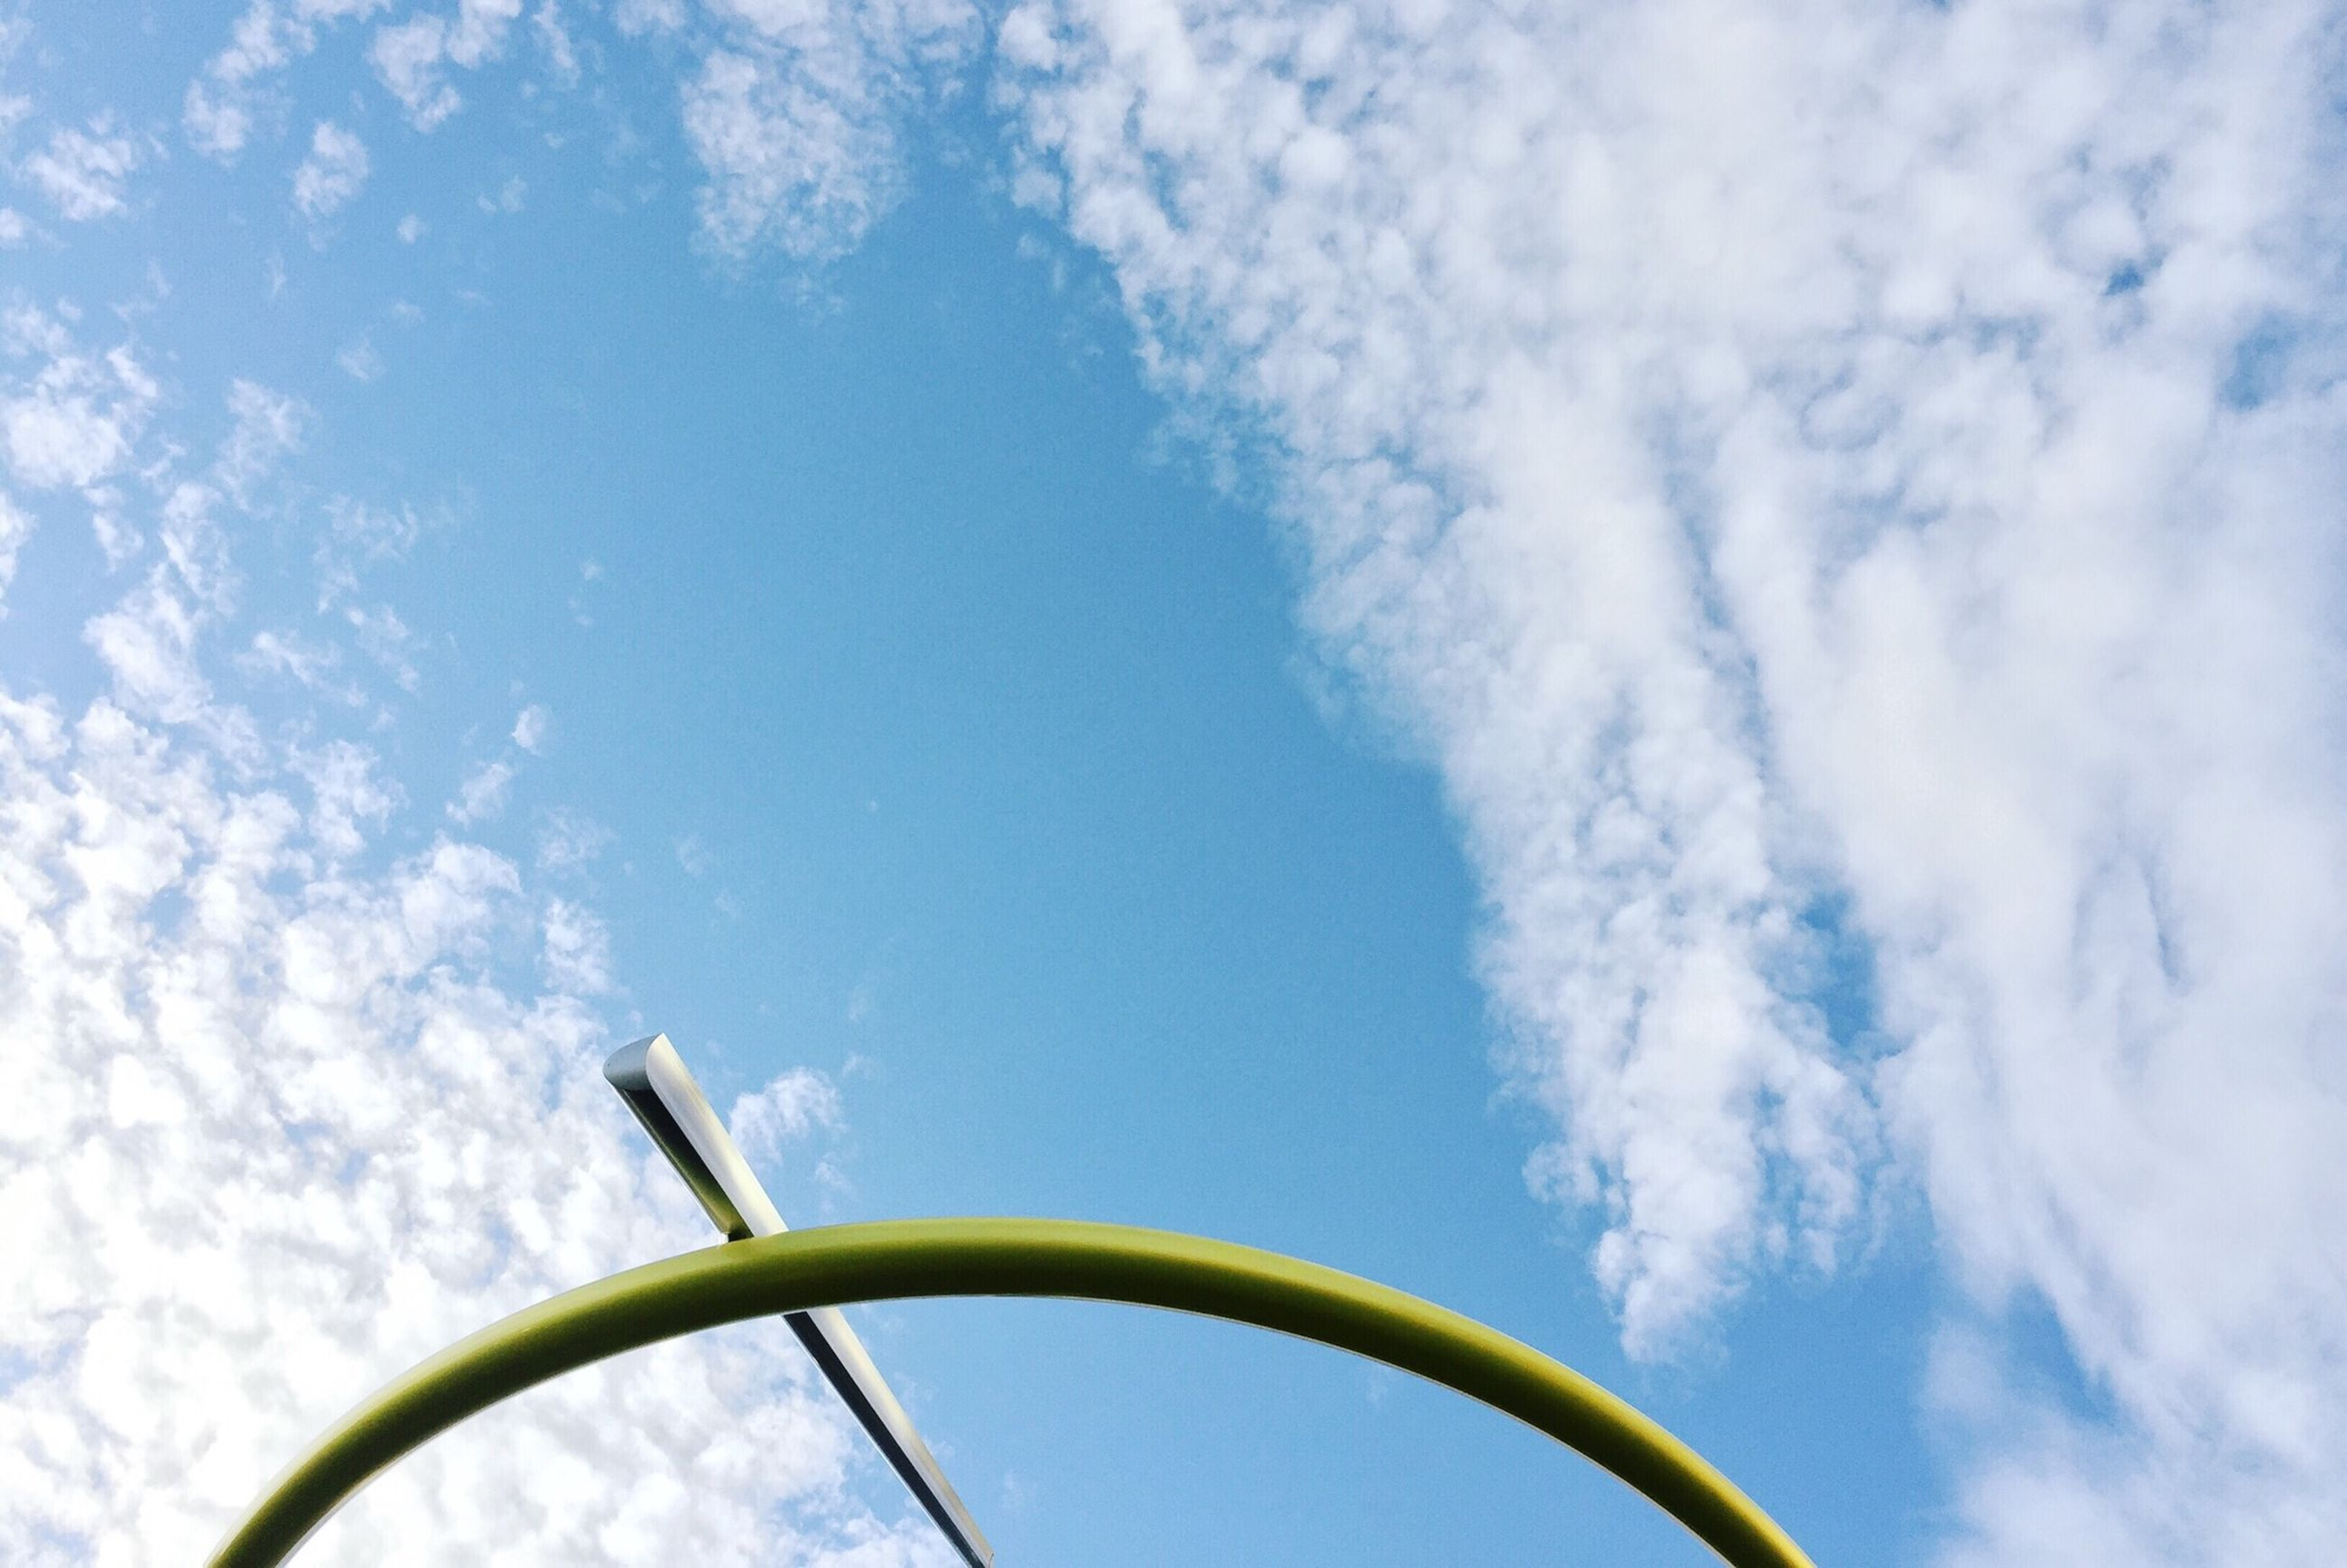 sky, low angle view, cloud - sky, blue, cloud, part of, nature, day, close-up, cropped, outdoors, cloudy, no people, metal, beauty in nature, street light, pole, yellow, tranquility, growth